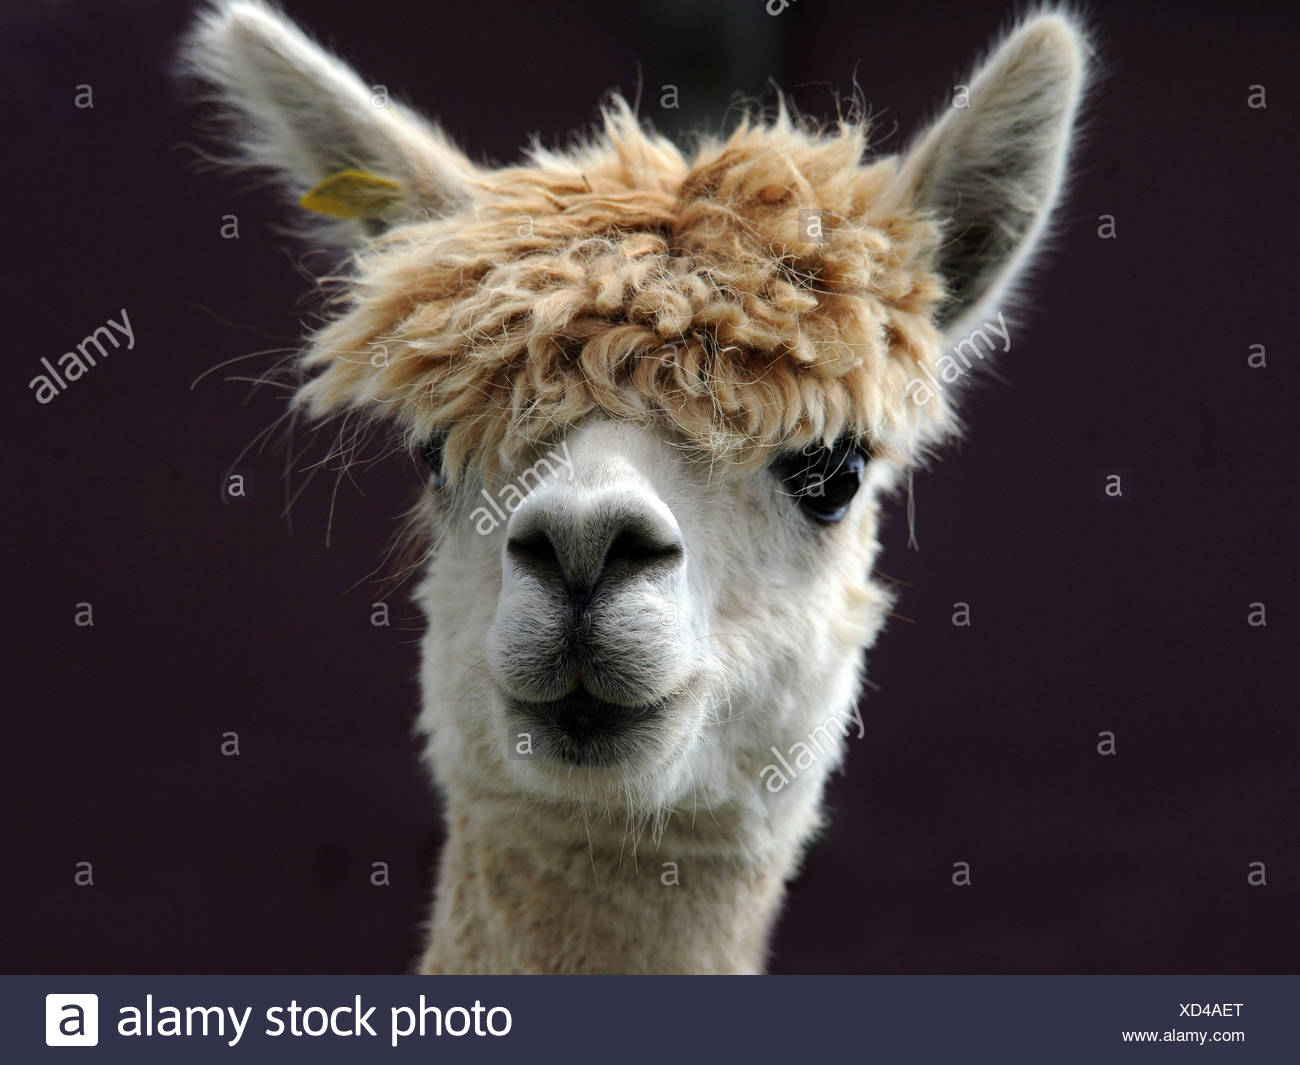 A portrait of an alpaca with a big fringe - Stock Image